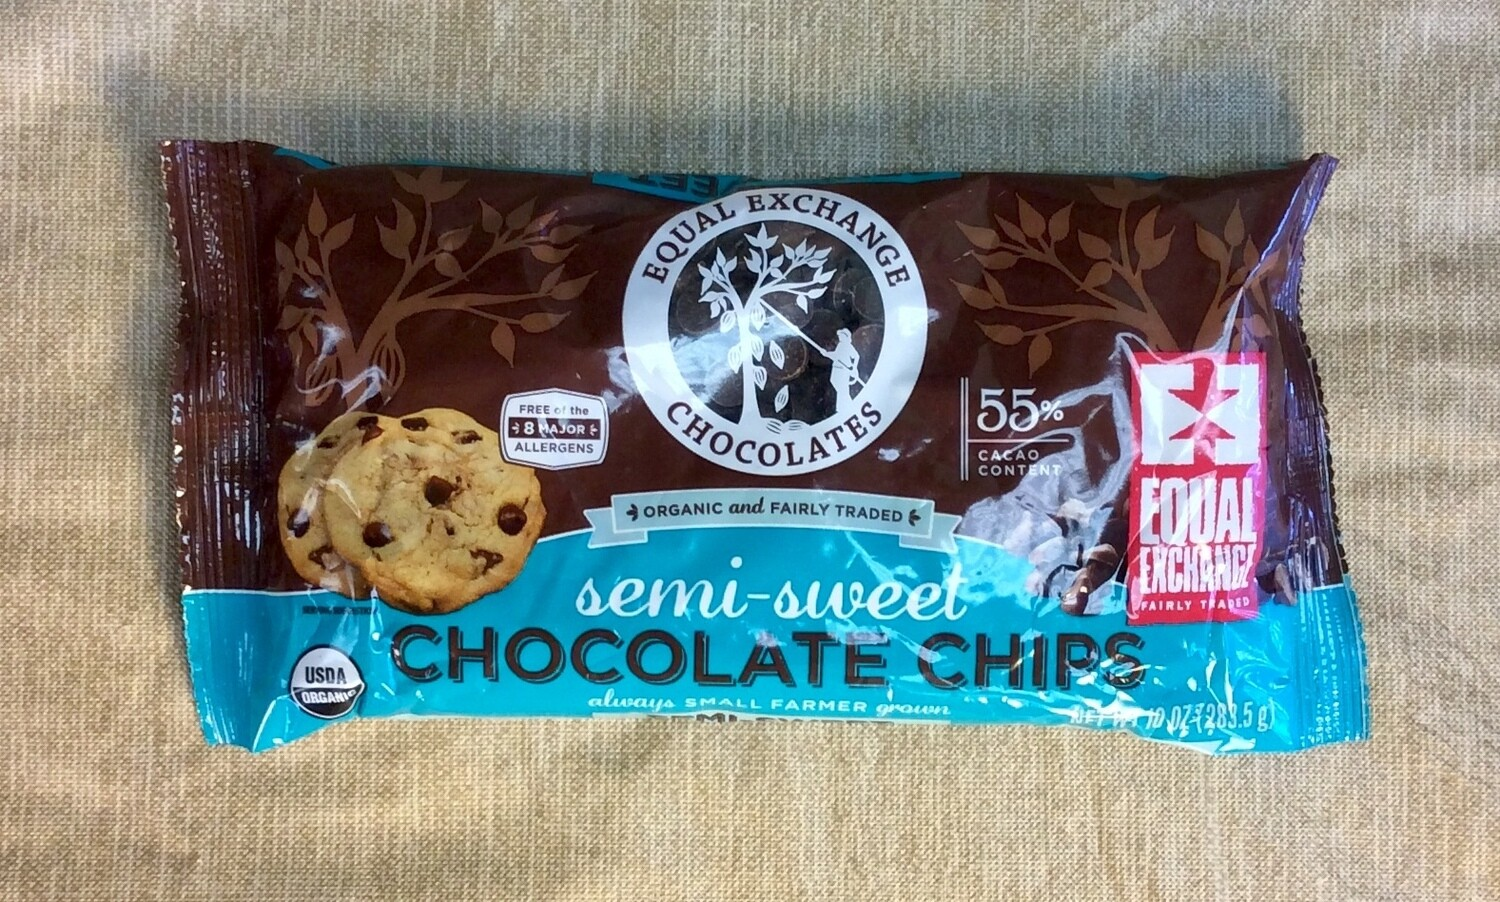 chocolate chips, semi-sweet, organic, fair trade; 10 ounce, Equal Exchange